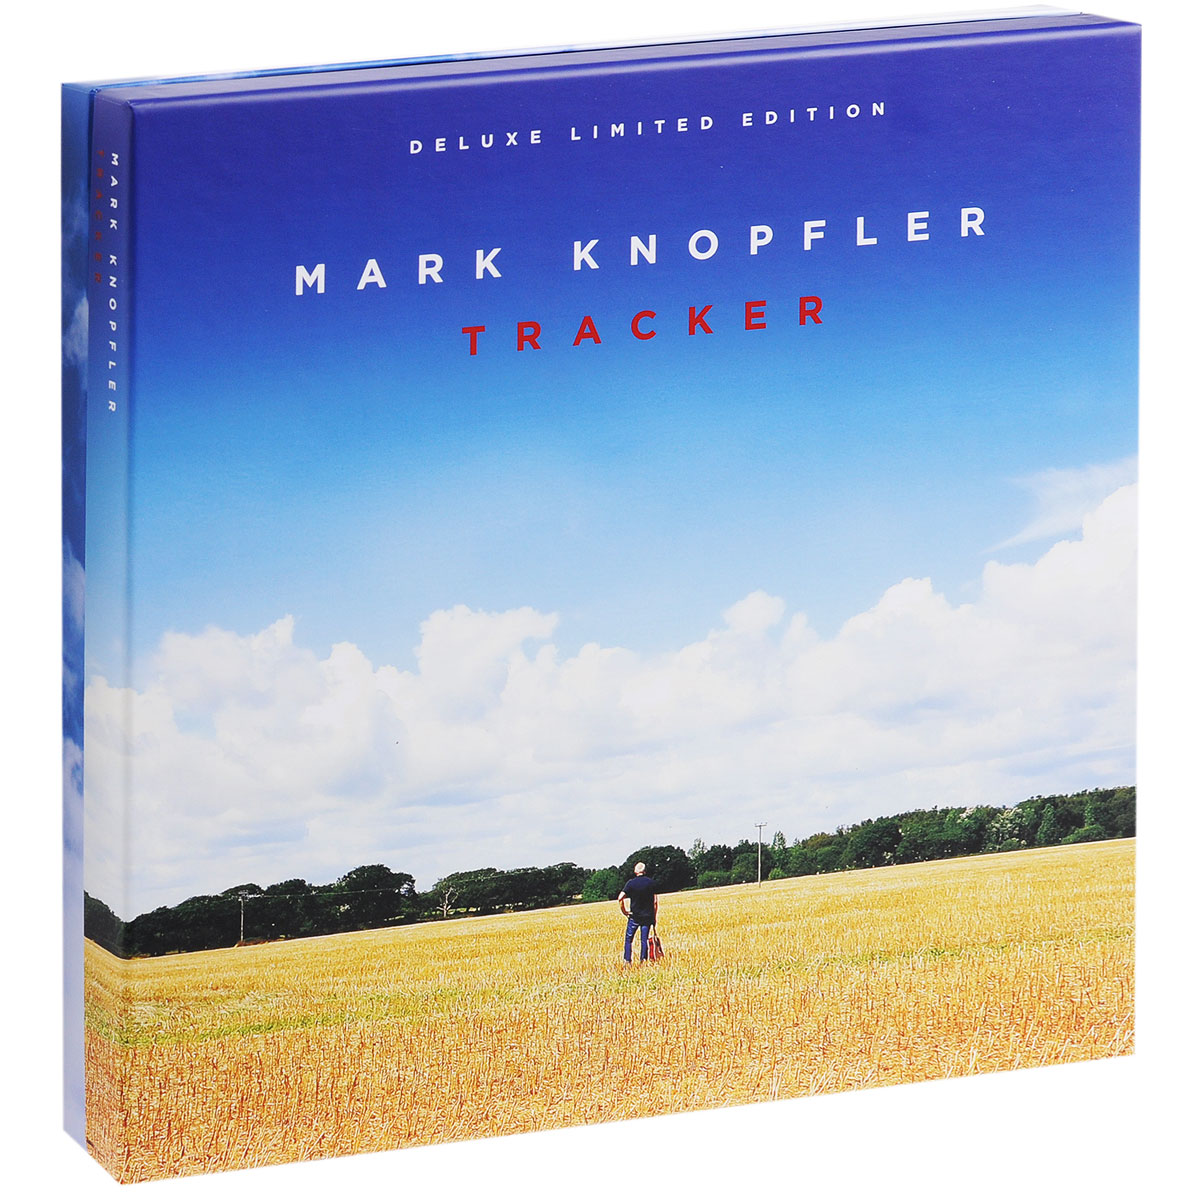 Марк Нопфлер Mark Knopfler. Tracker. Deluxe Limited Edition (2 CD + DVD + 2 LP) men